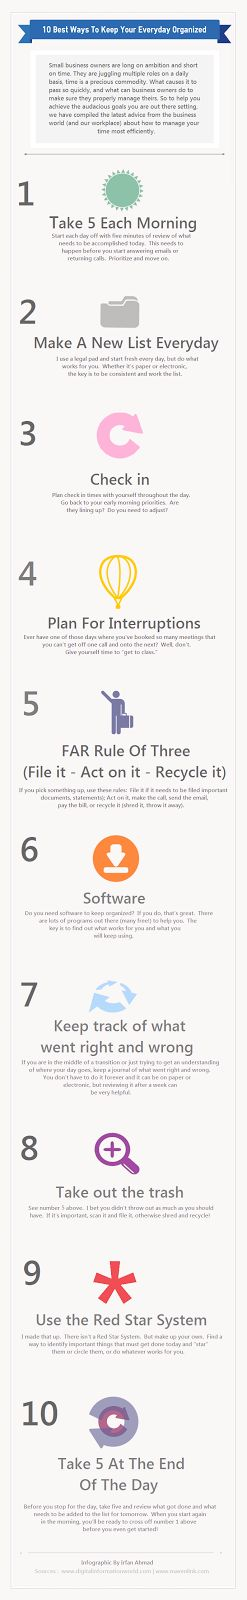 10 Best Ways To Keep Your Everyday Organized - time management tips for small business owners infographic via Digital Information World